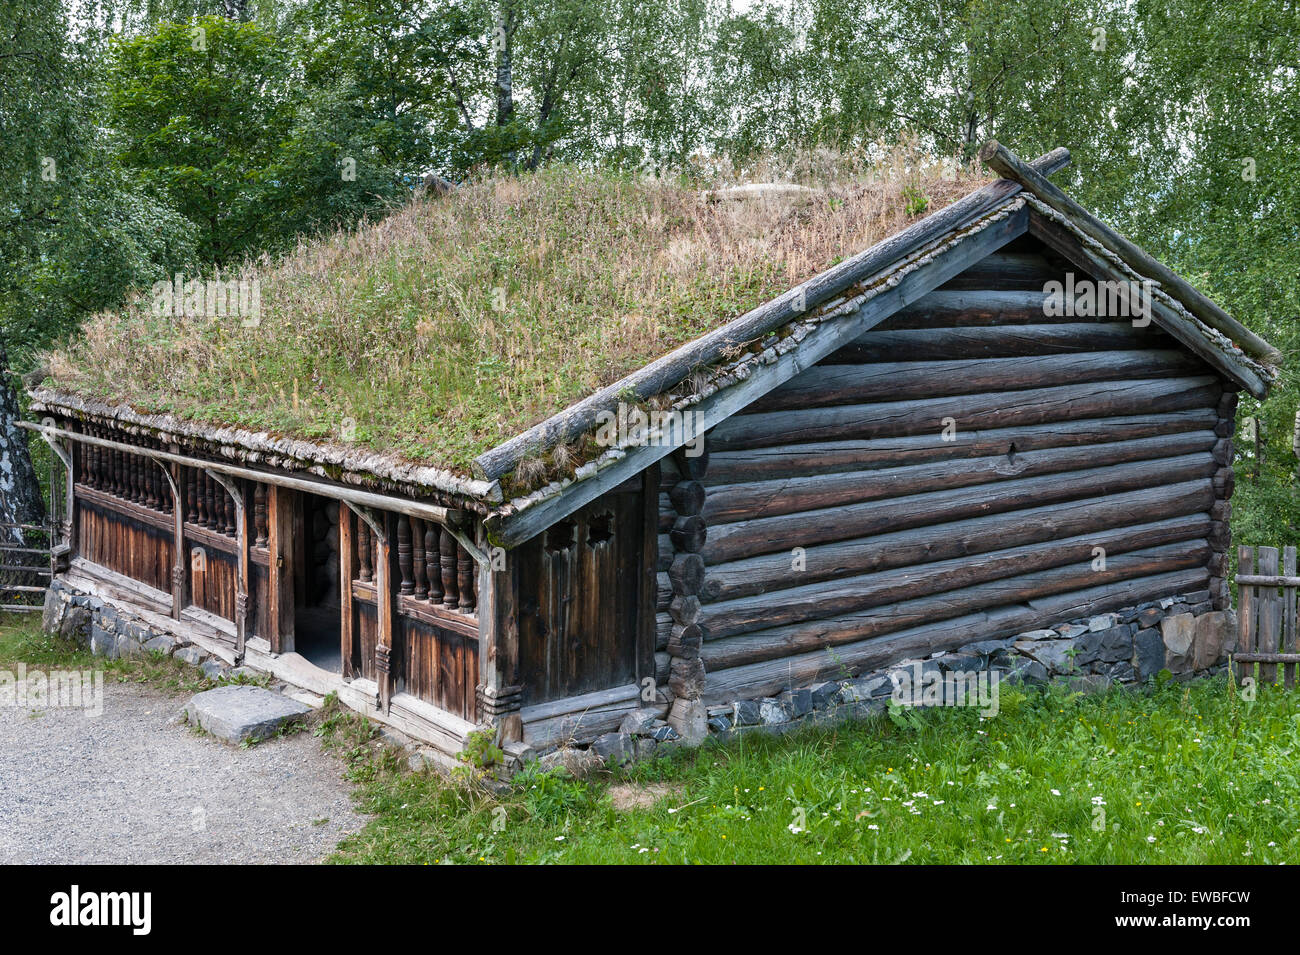 Lillehammer, Norway  The Maihaugen open-air museum of